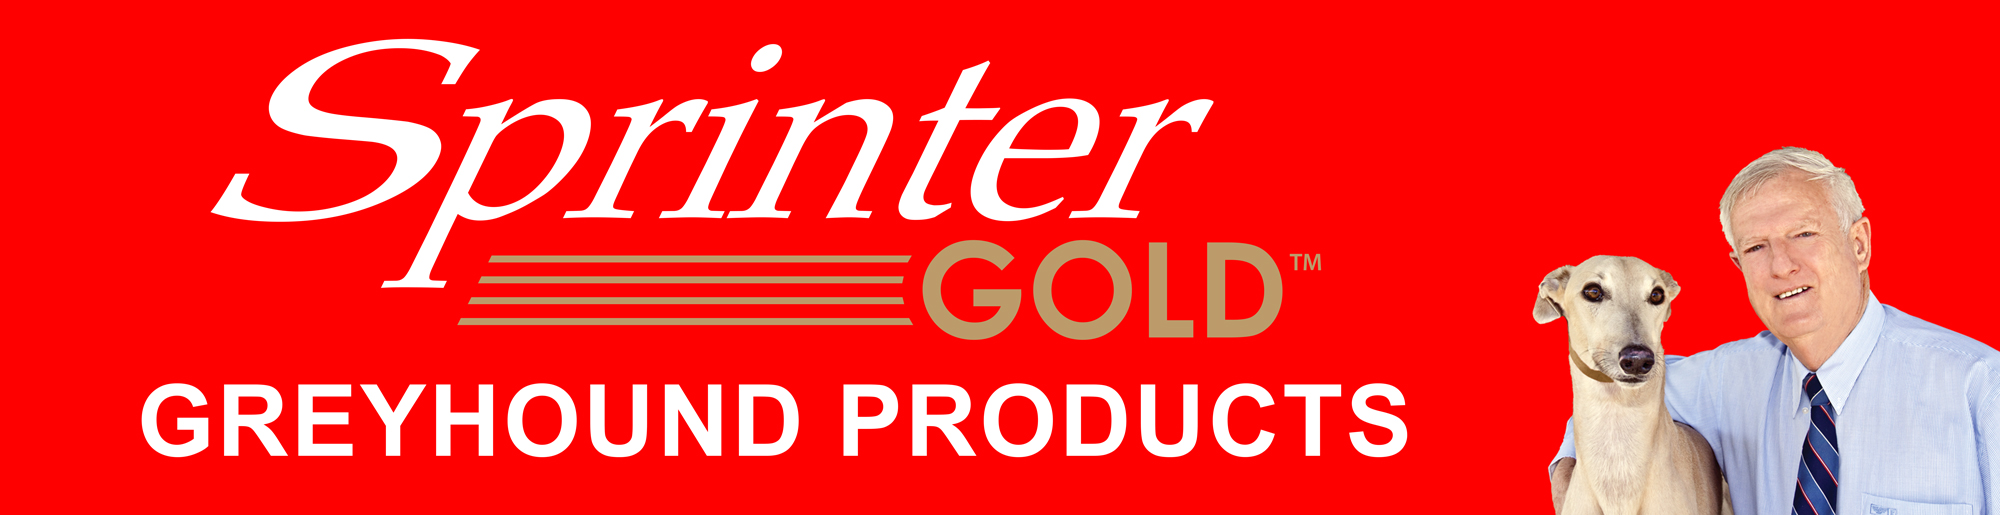 Energy E Energy E Sprinter Gold Greyhound Products